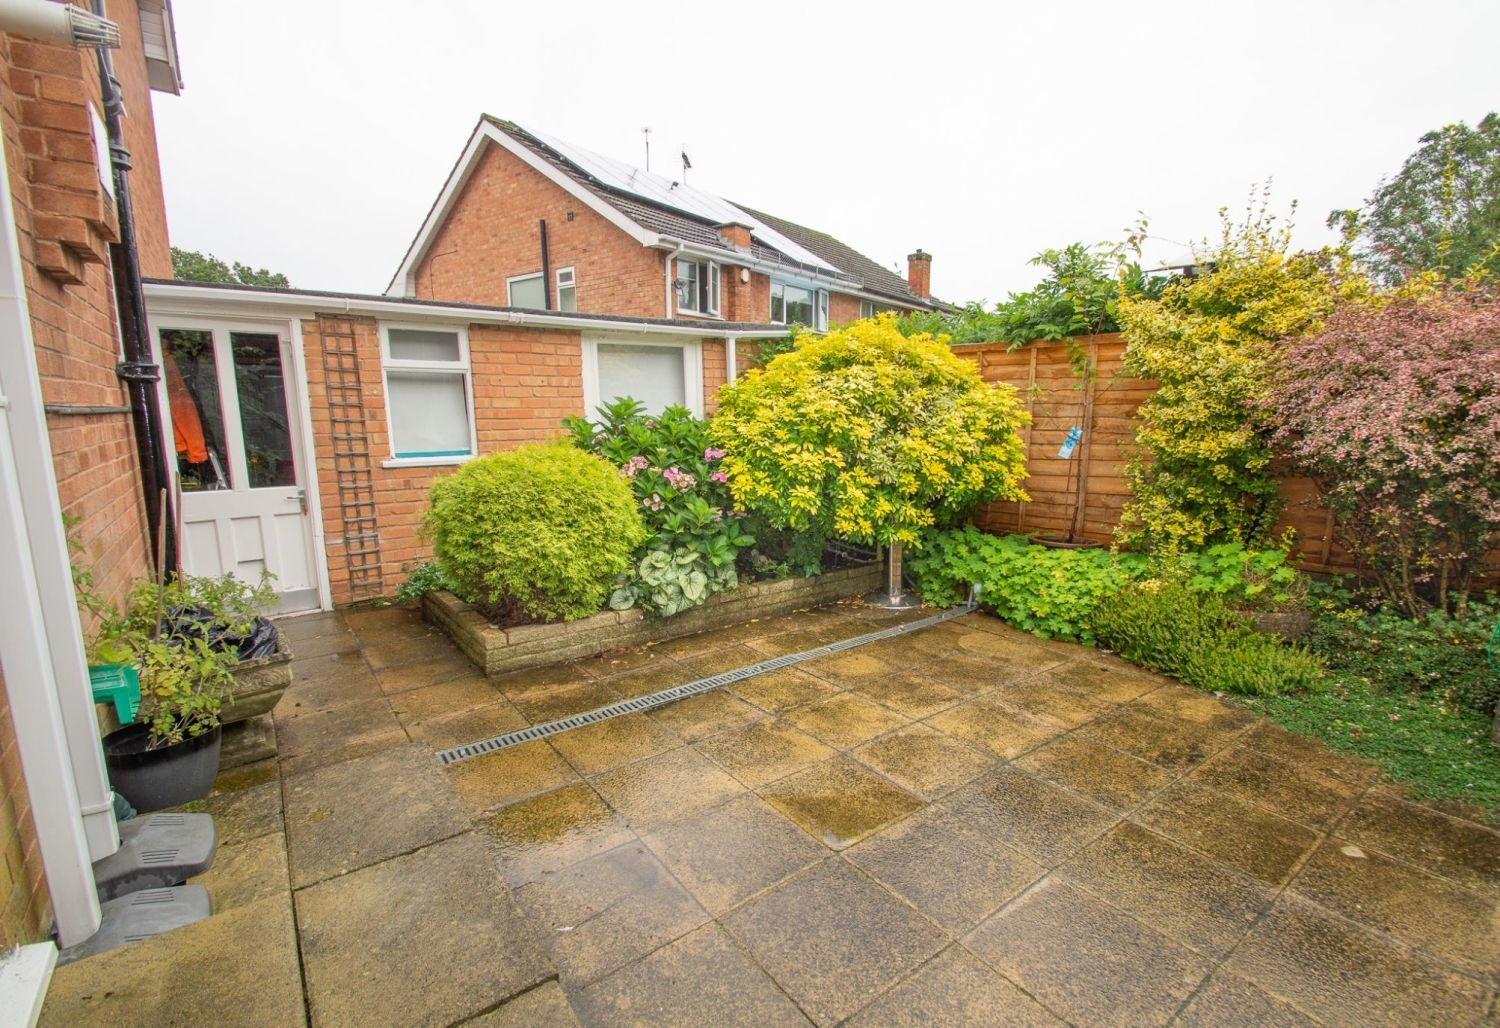 3 bed semi-detached for sale in Vicarage Crescent, Redditch 14